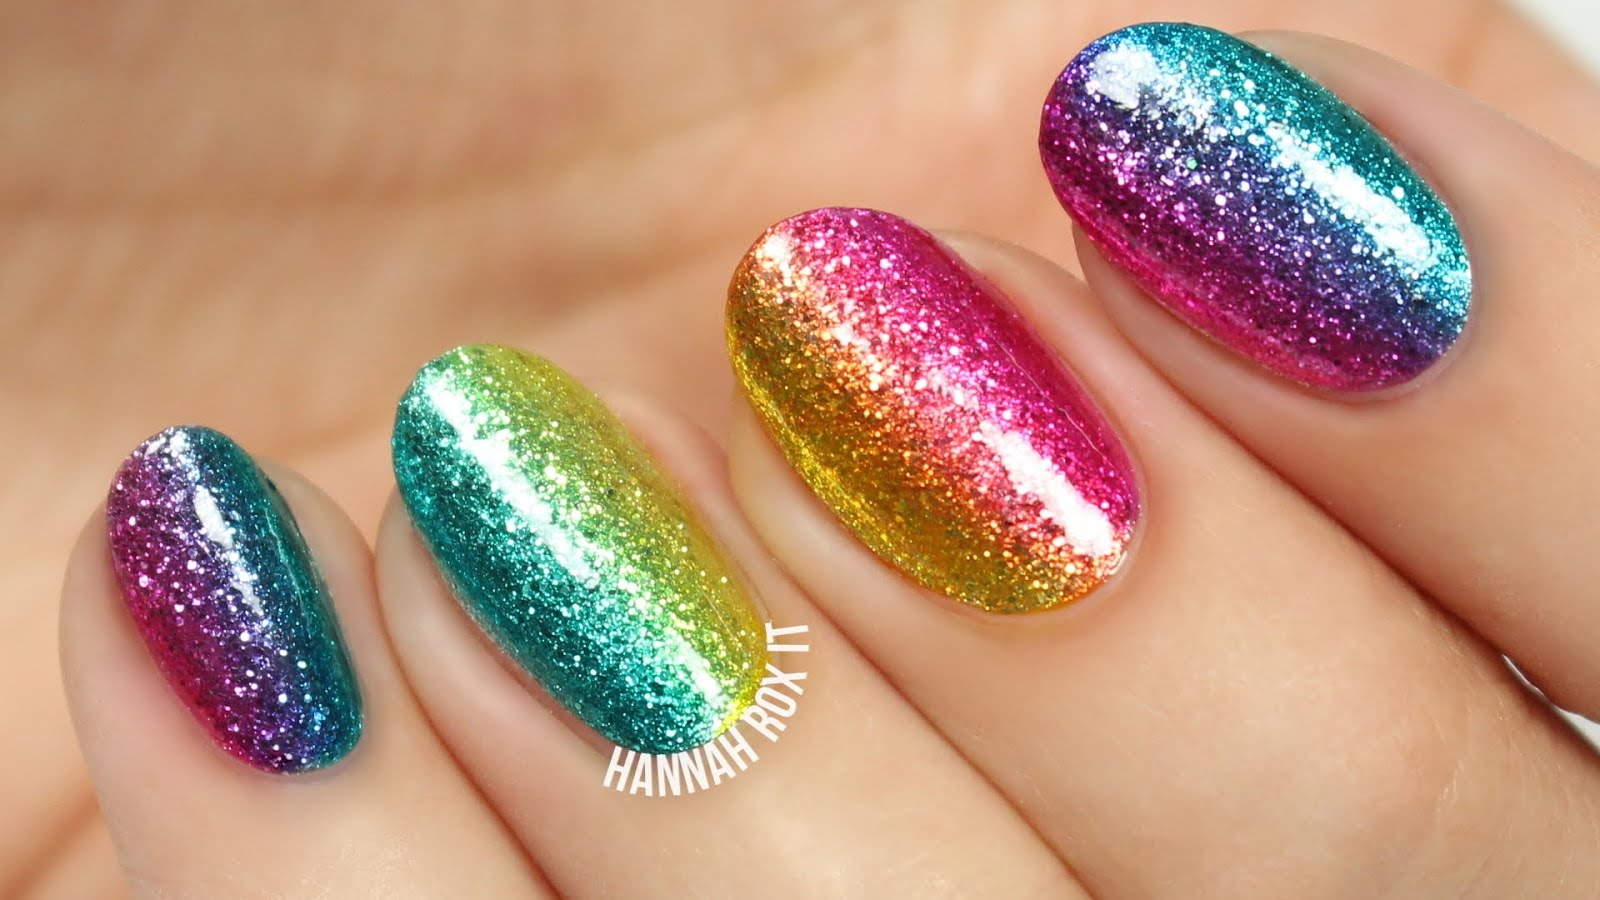 Rock the Rainbow Glitter Nail Art: DIY Tutorial